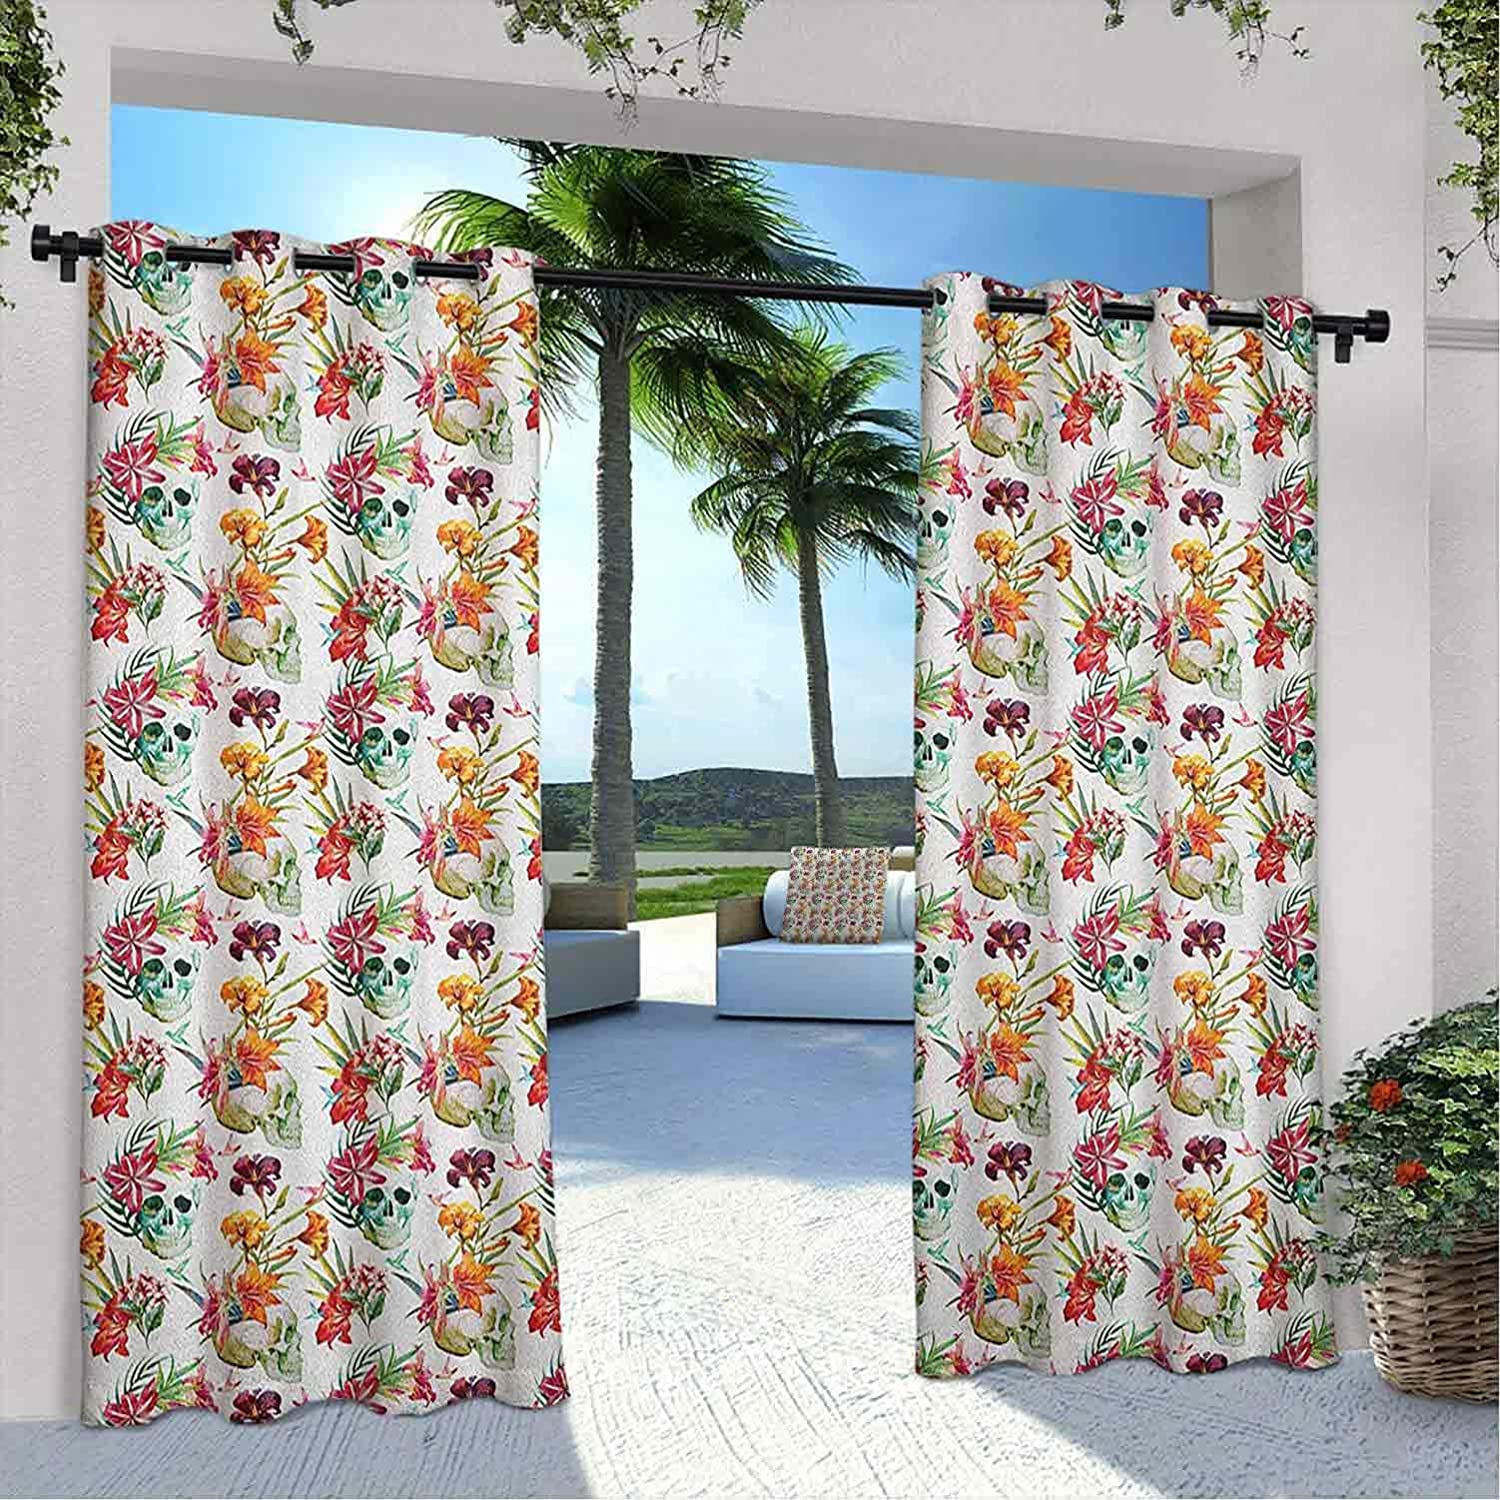 Limited time cheap sale Outdoor Pavilion Skull Curtain Lilies Blooms Tropical Super beauty product restock quality top! Le Flower